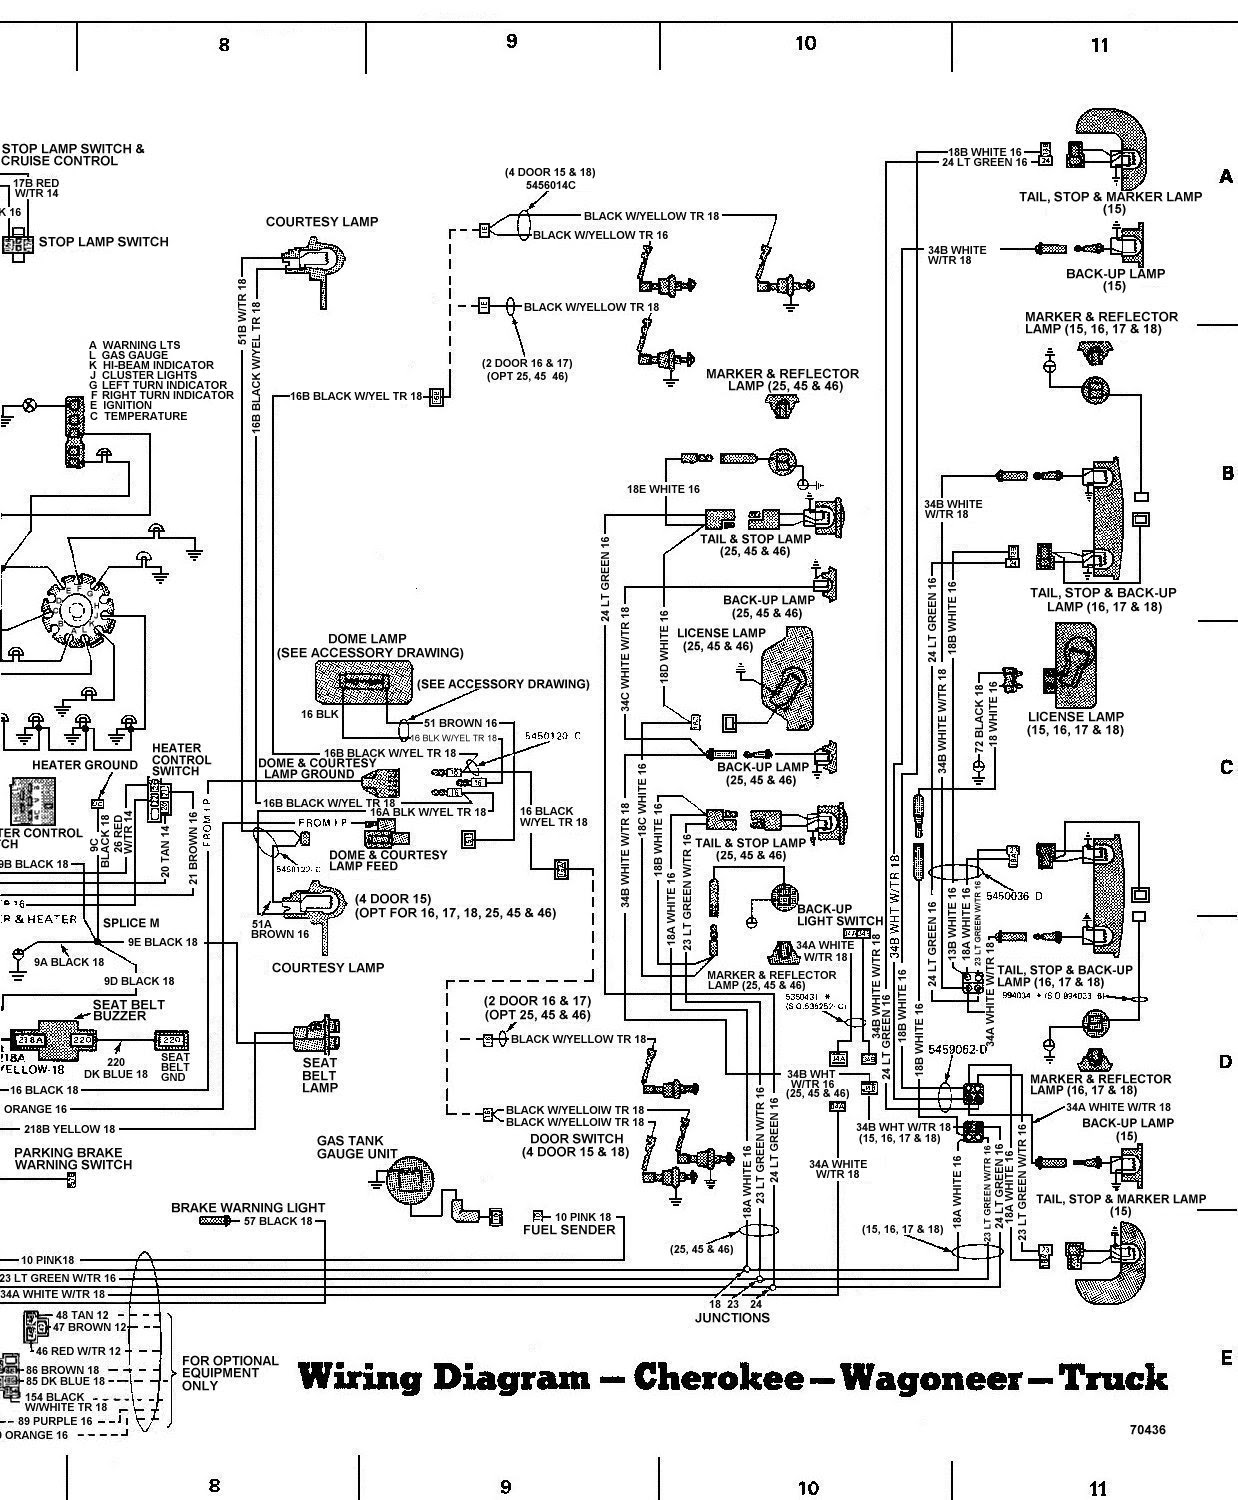 98 jeep cherokee door wiring diagram diagram base website wiring ...  diagram base website full edition - stopdublin